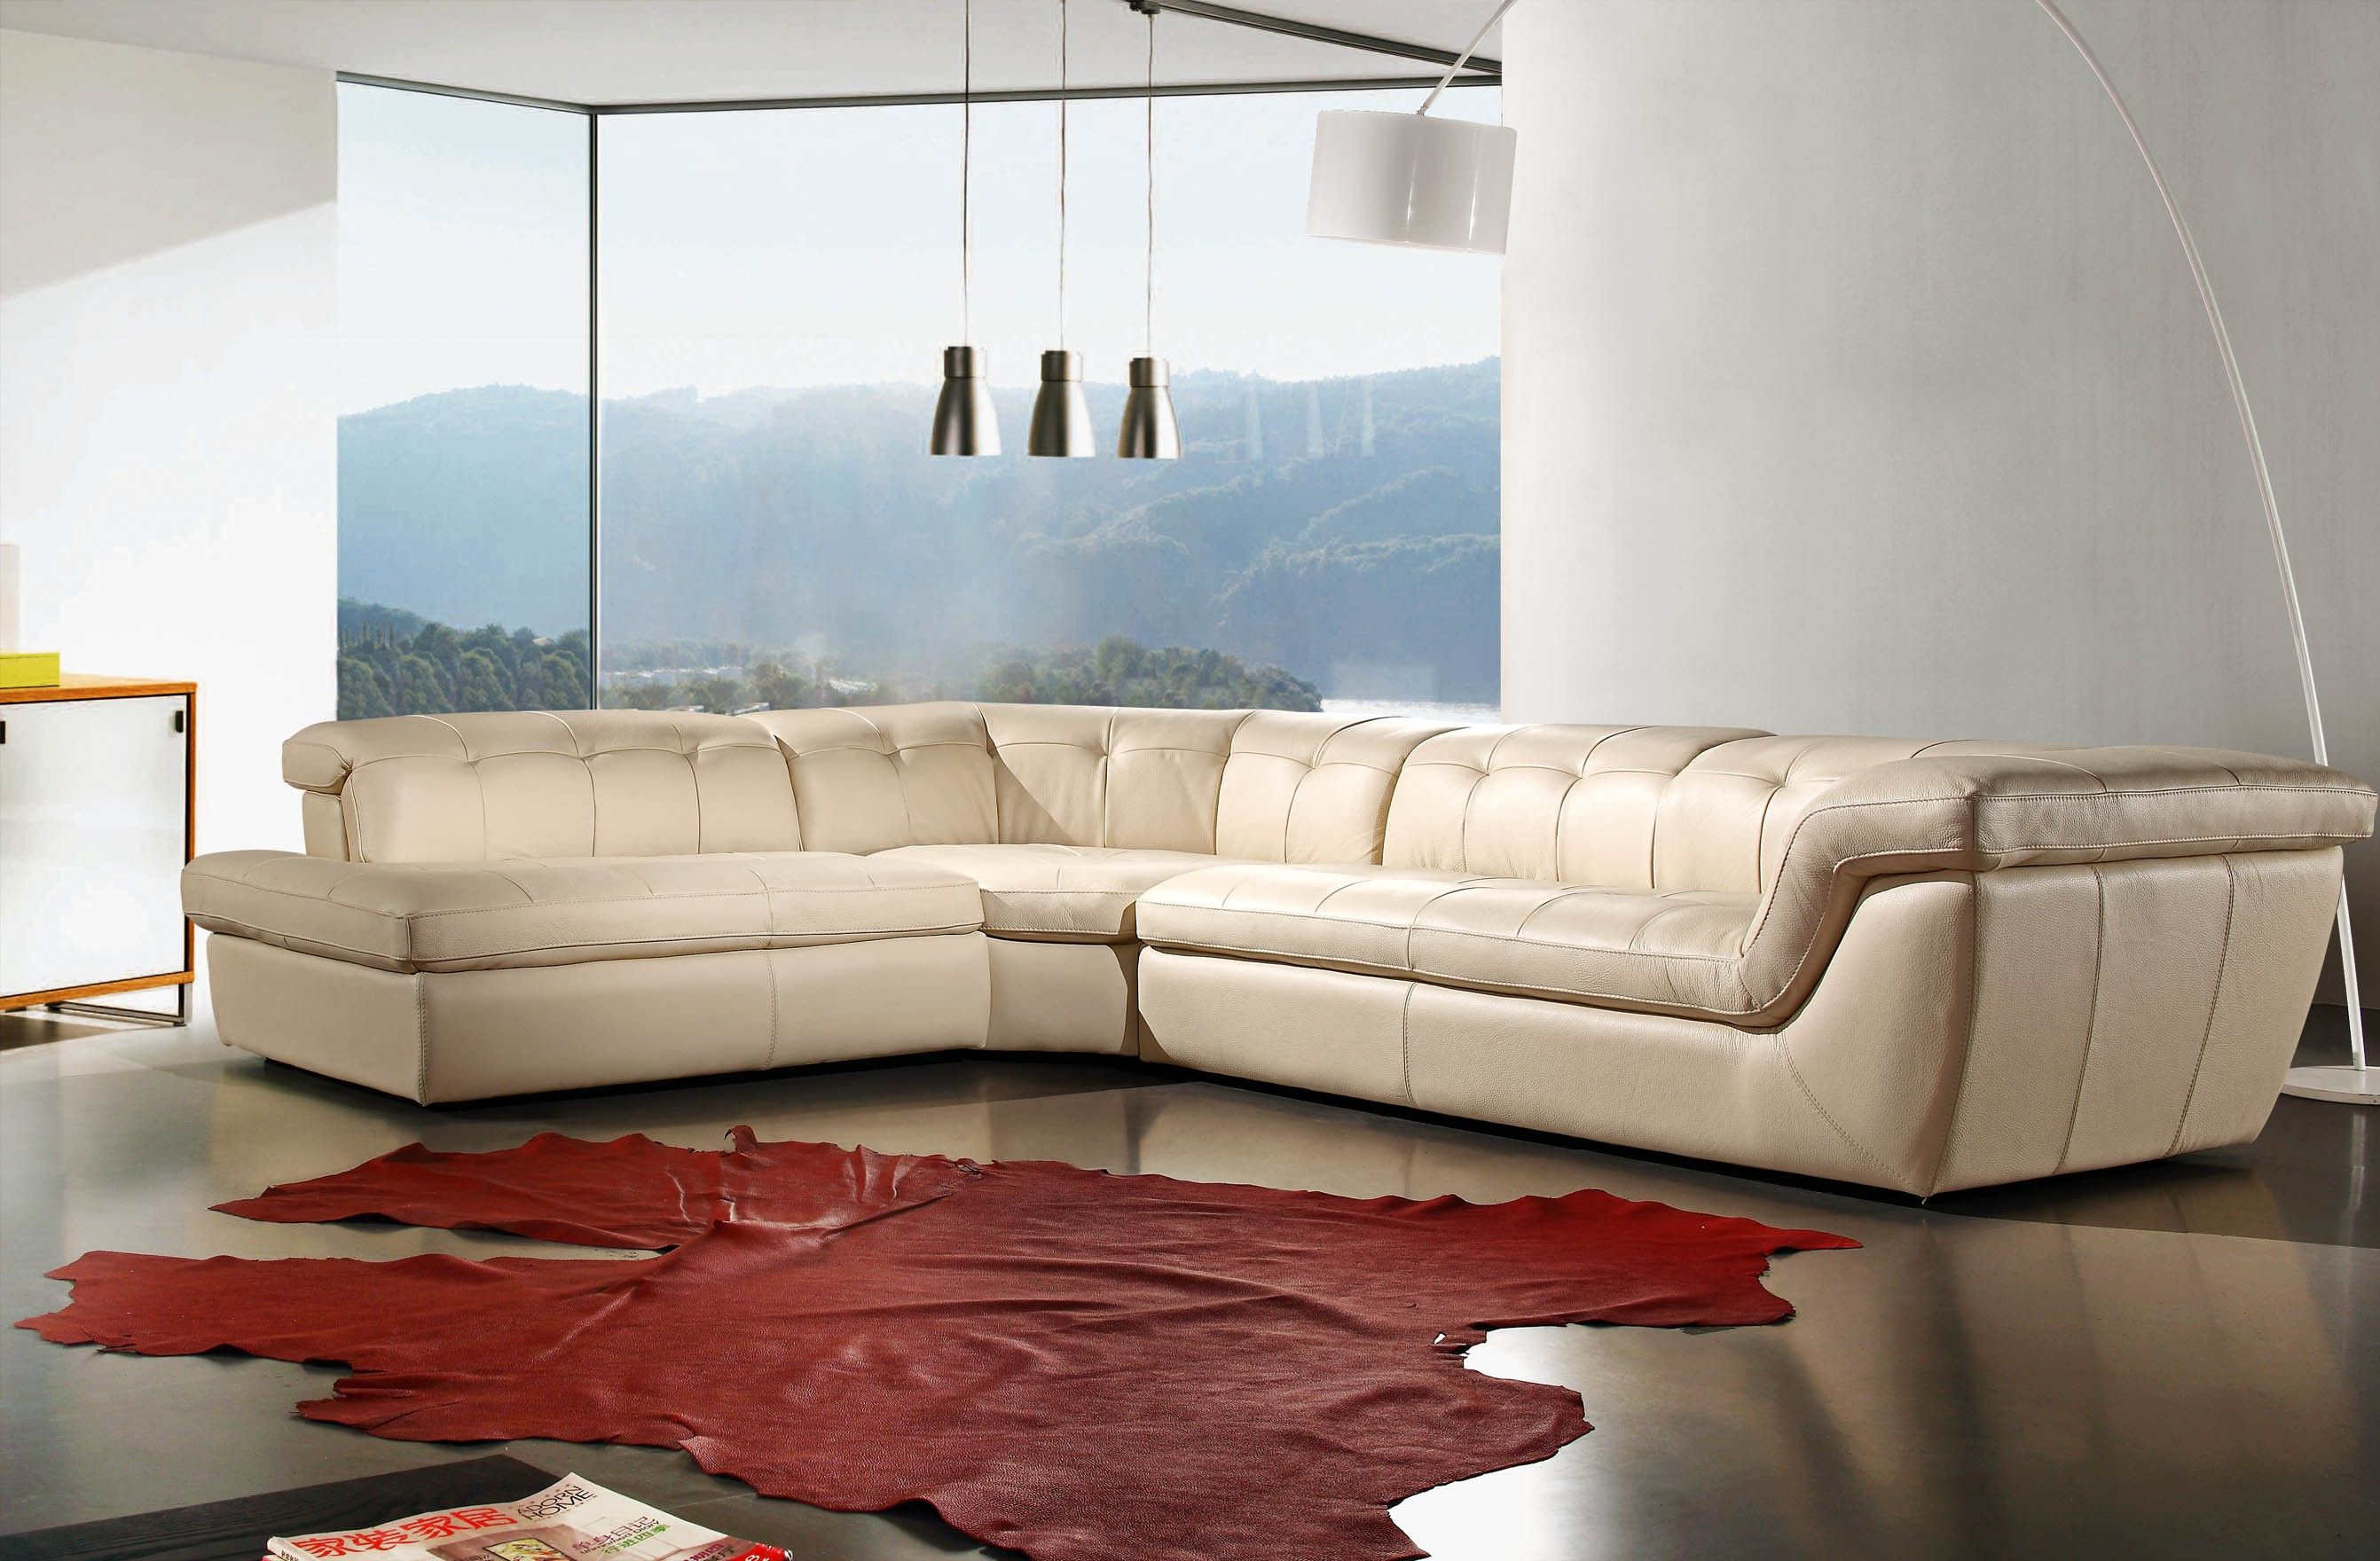 Living Room Design With Sectional Sofa Pleasing American Contemporary Sofa 10 Тыс Изображений Найдено В Яндекс Inspiration